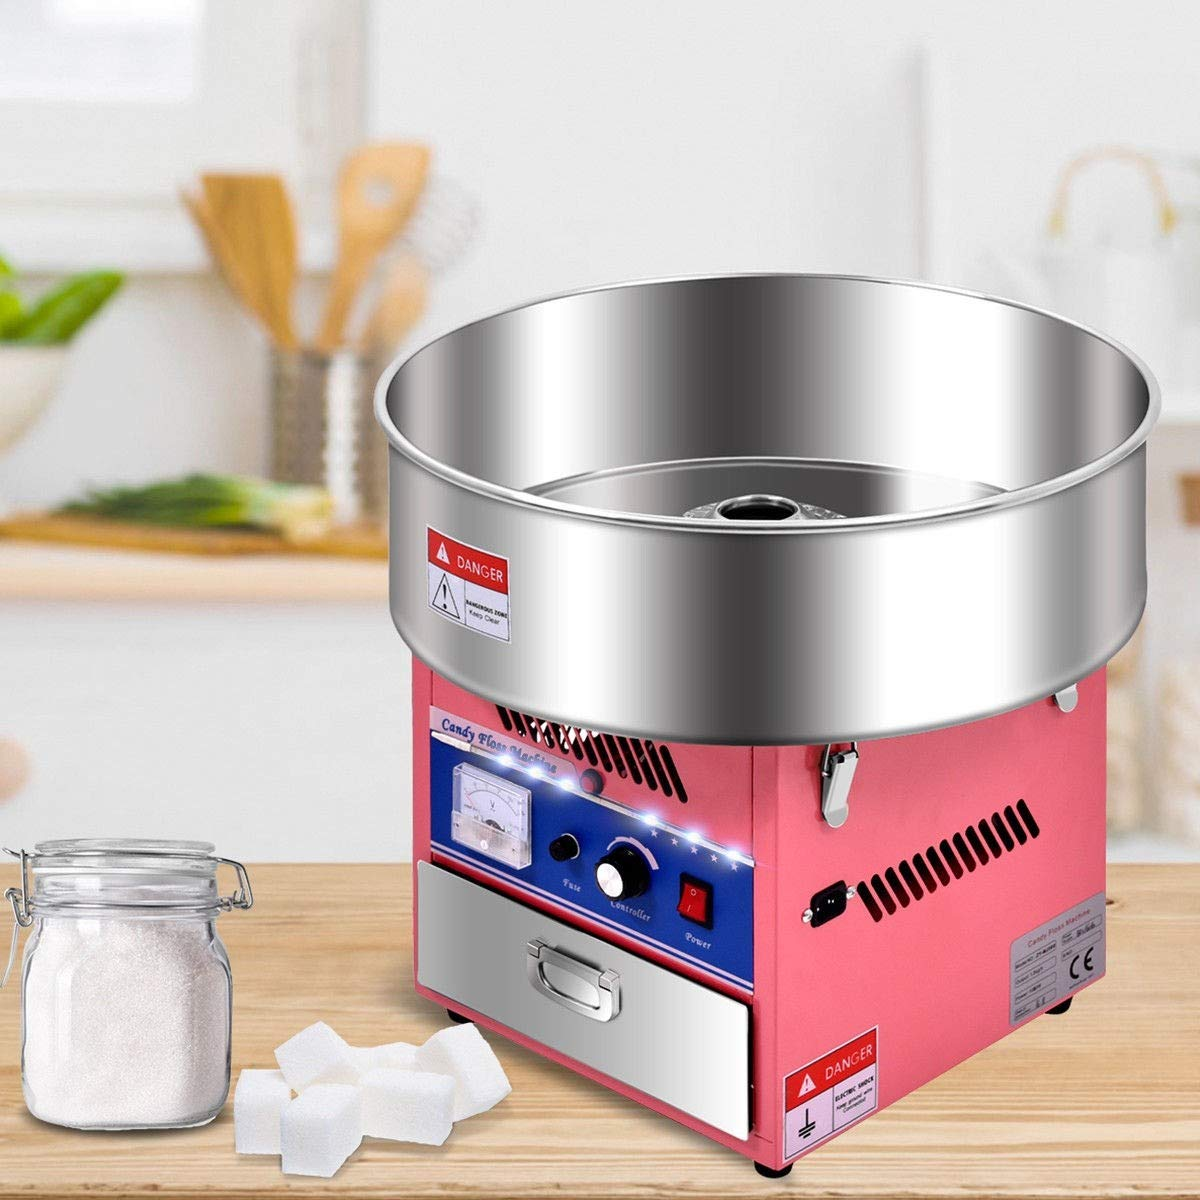 Cotton Candy Machine, Pink Electric Cotton Candy Machine by MD Group (Image #6)